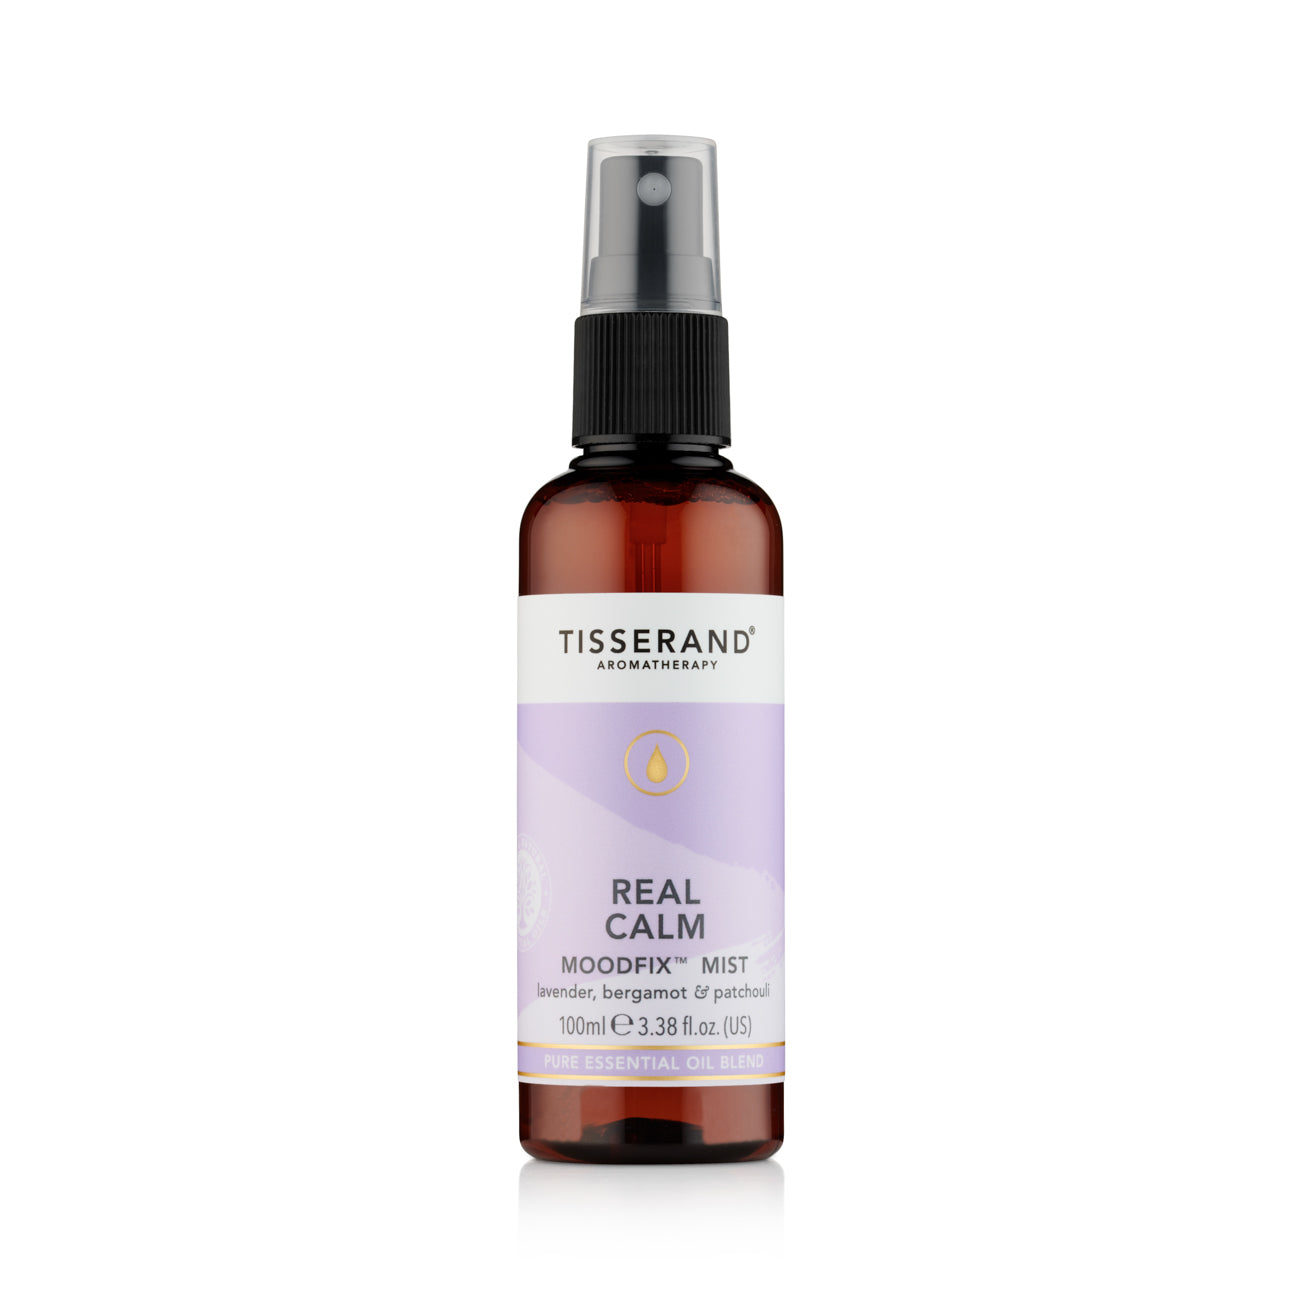 Tisserand Mood Fix Mist - Real Calm